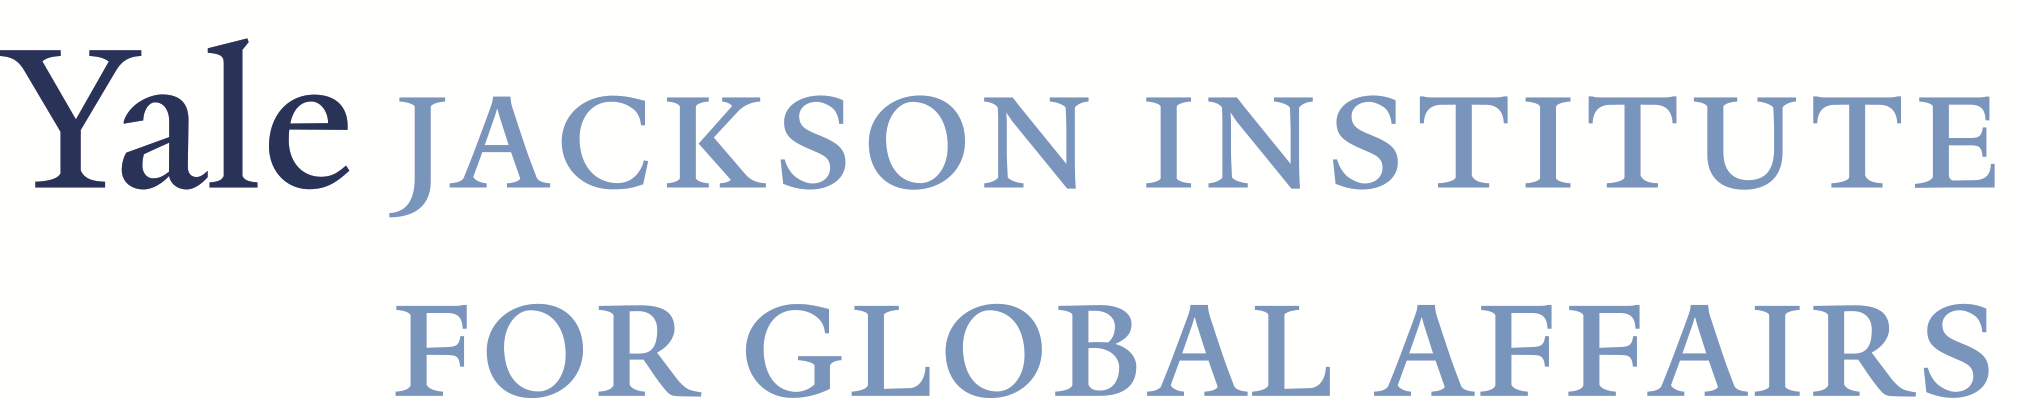 Yale University's Jackson Institute for Global Affairs